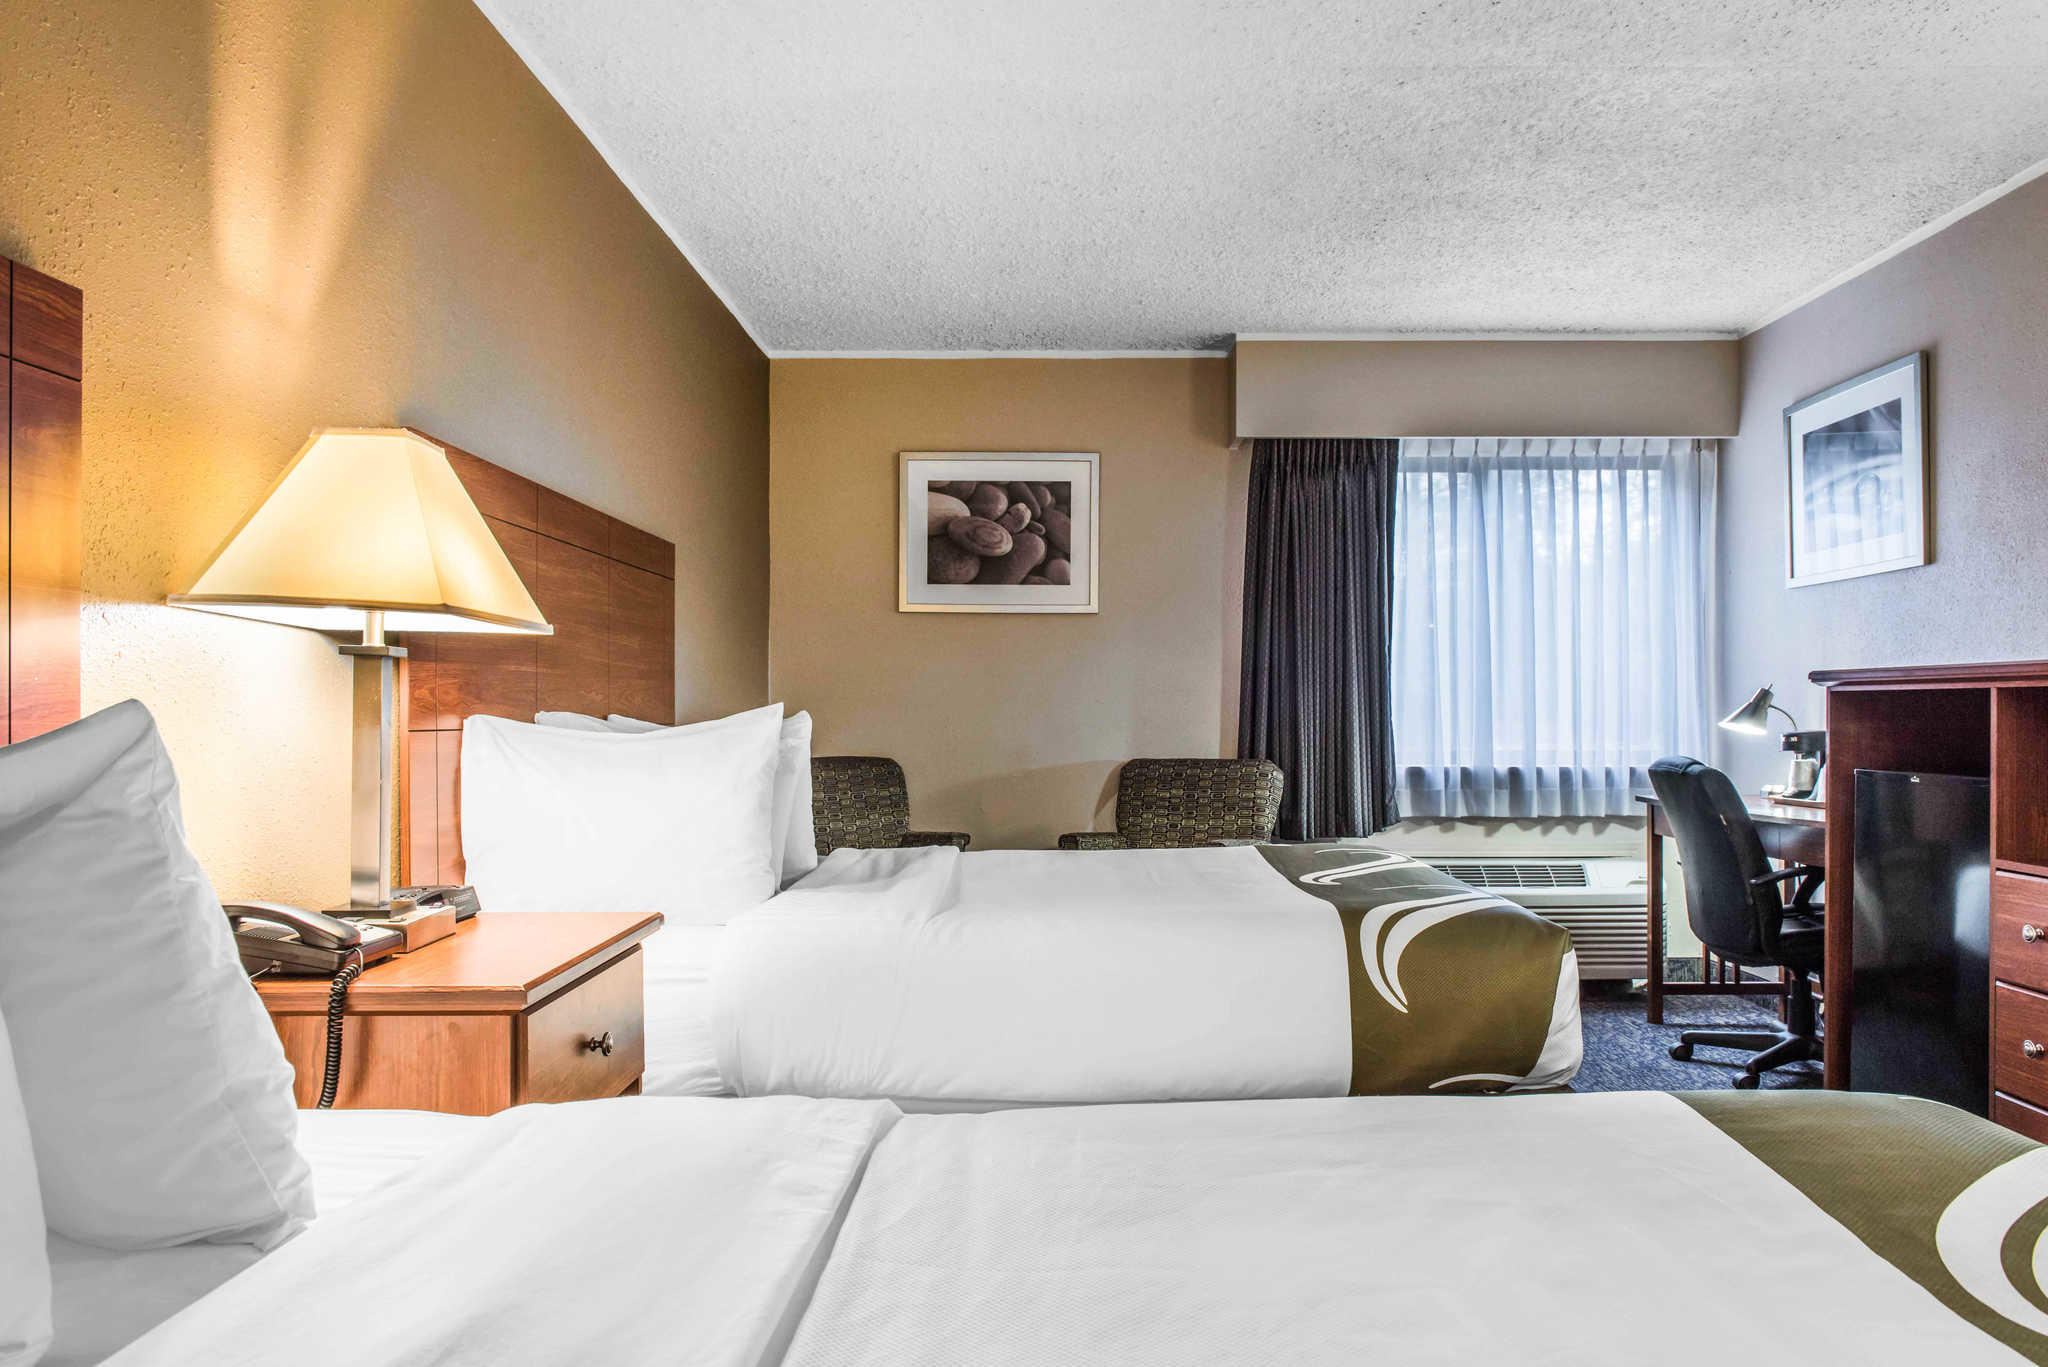 Quality Inn Austintown-Youngstown West image 11